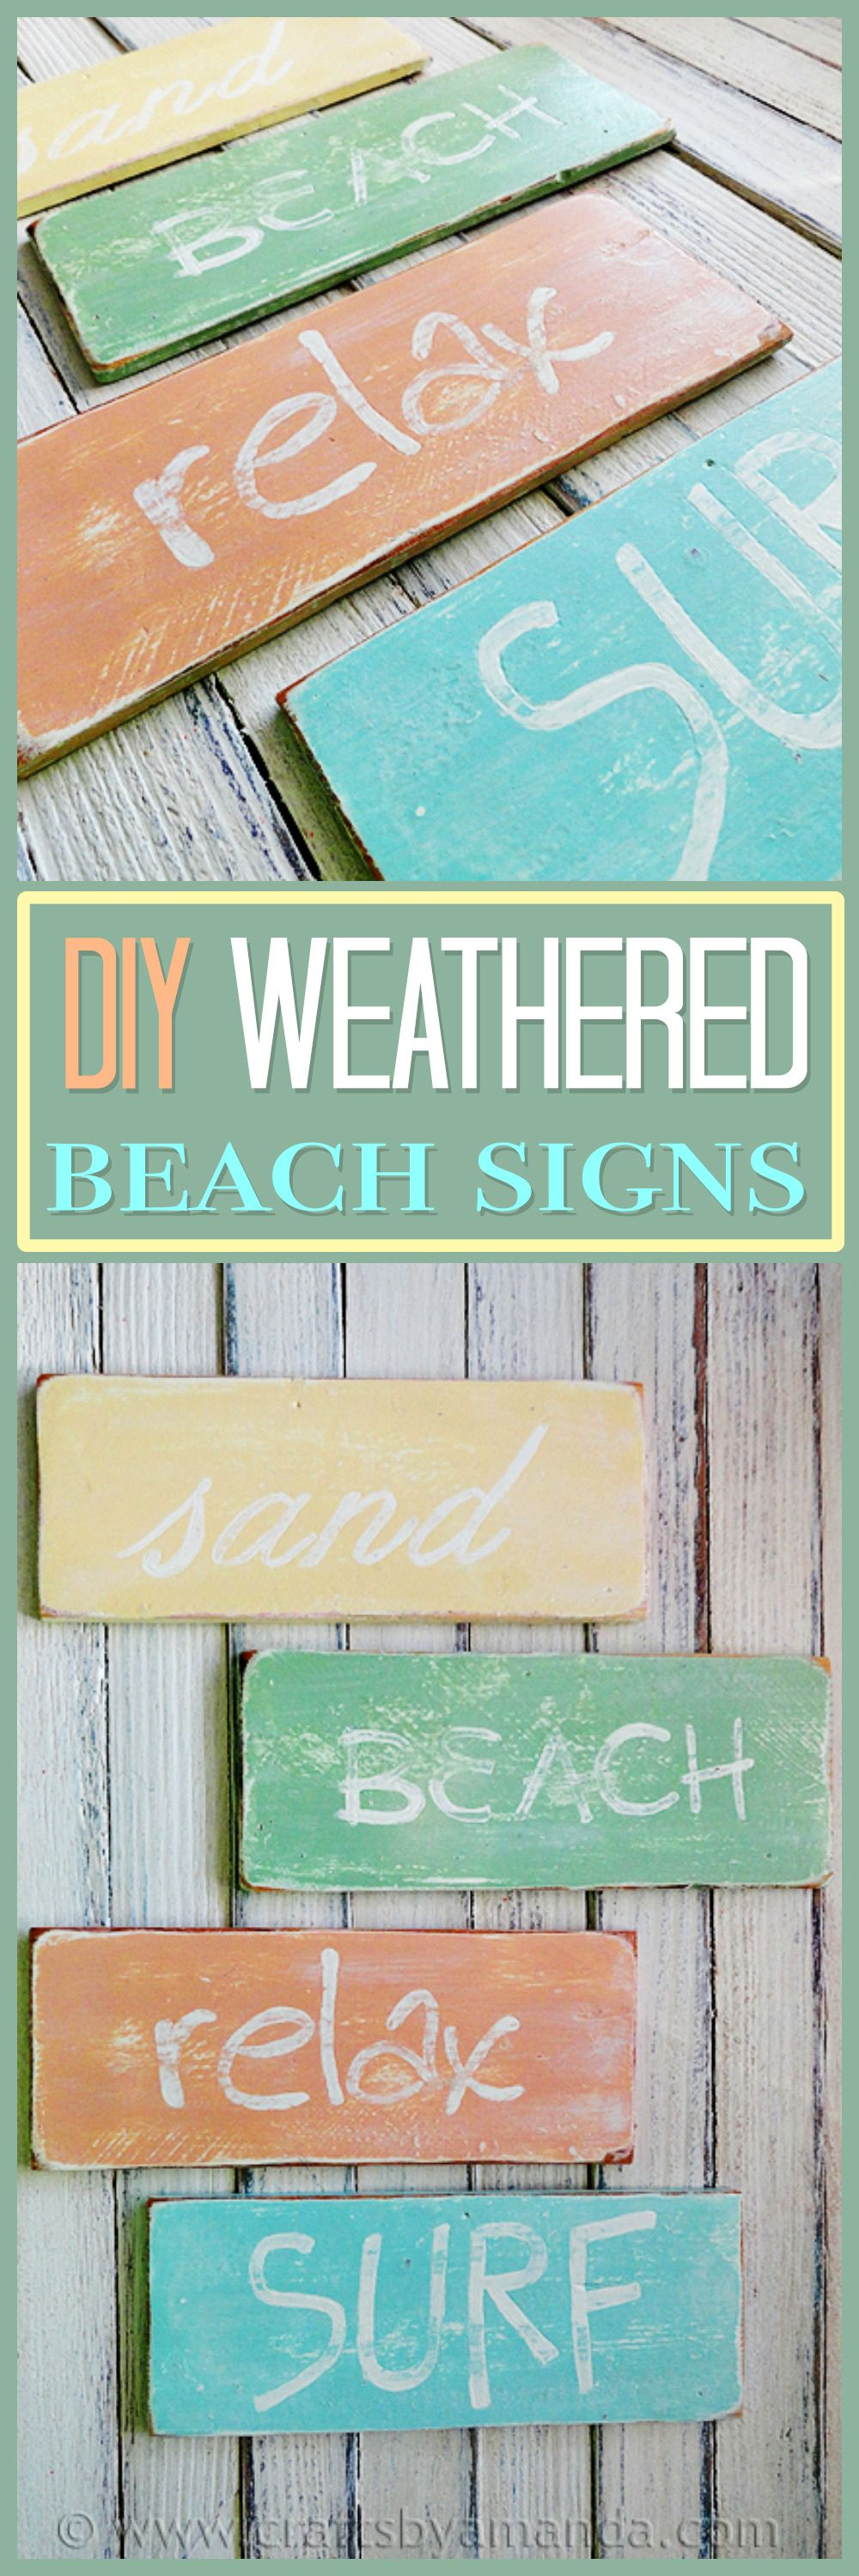 Bring A Little Of That Beach Feeling Into Your Home By Making Some